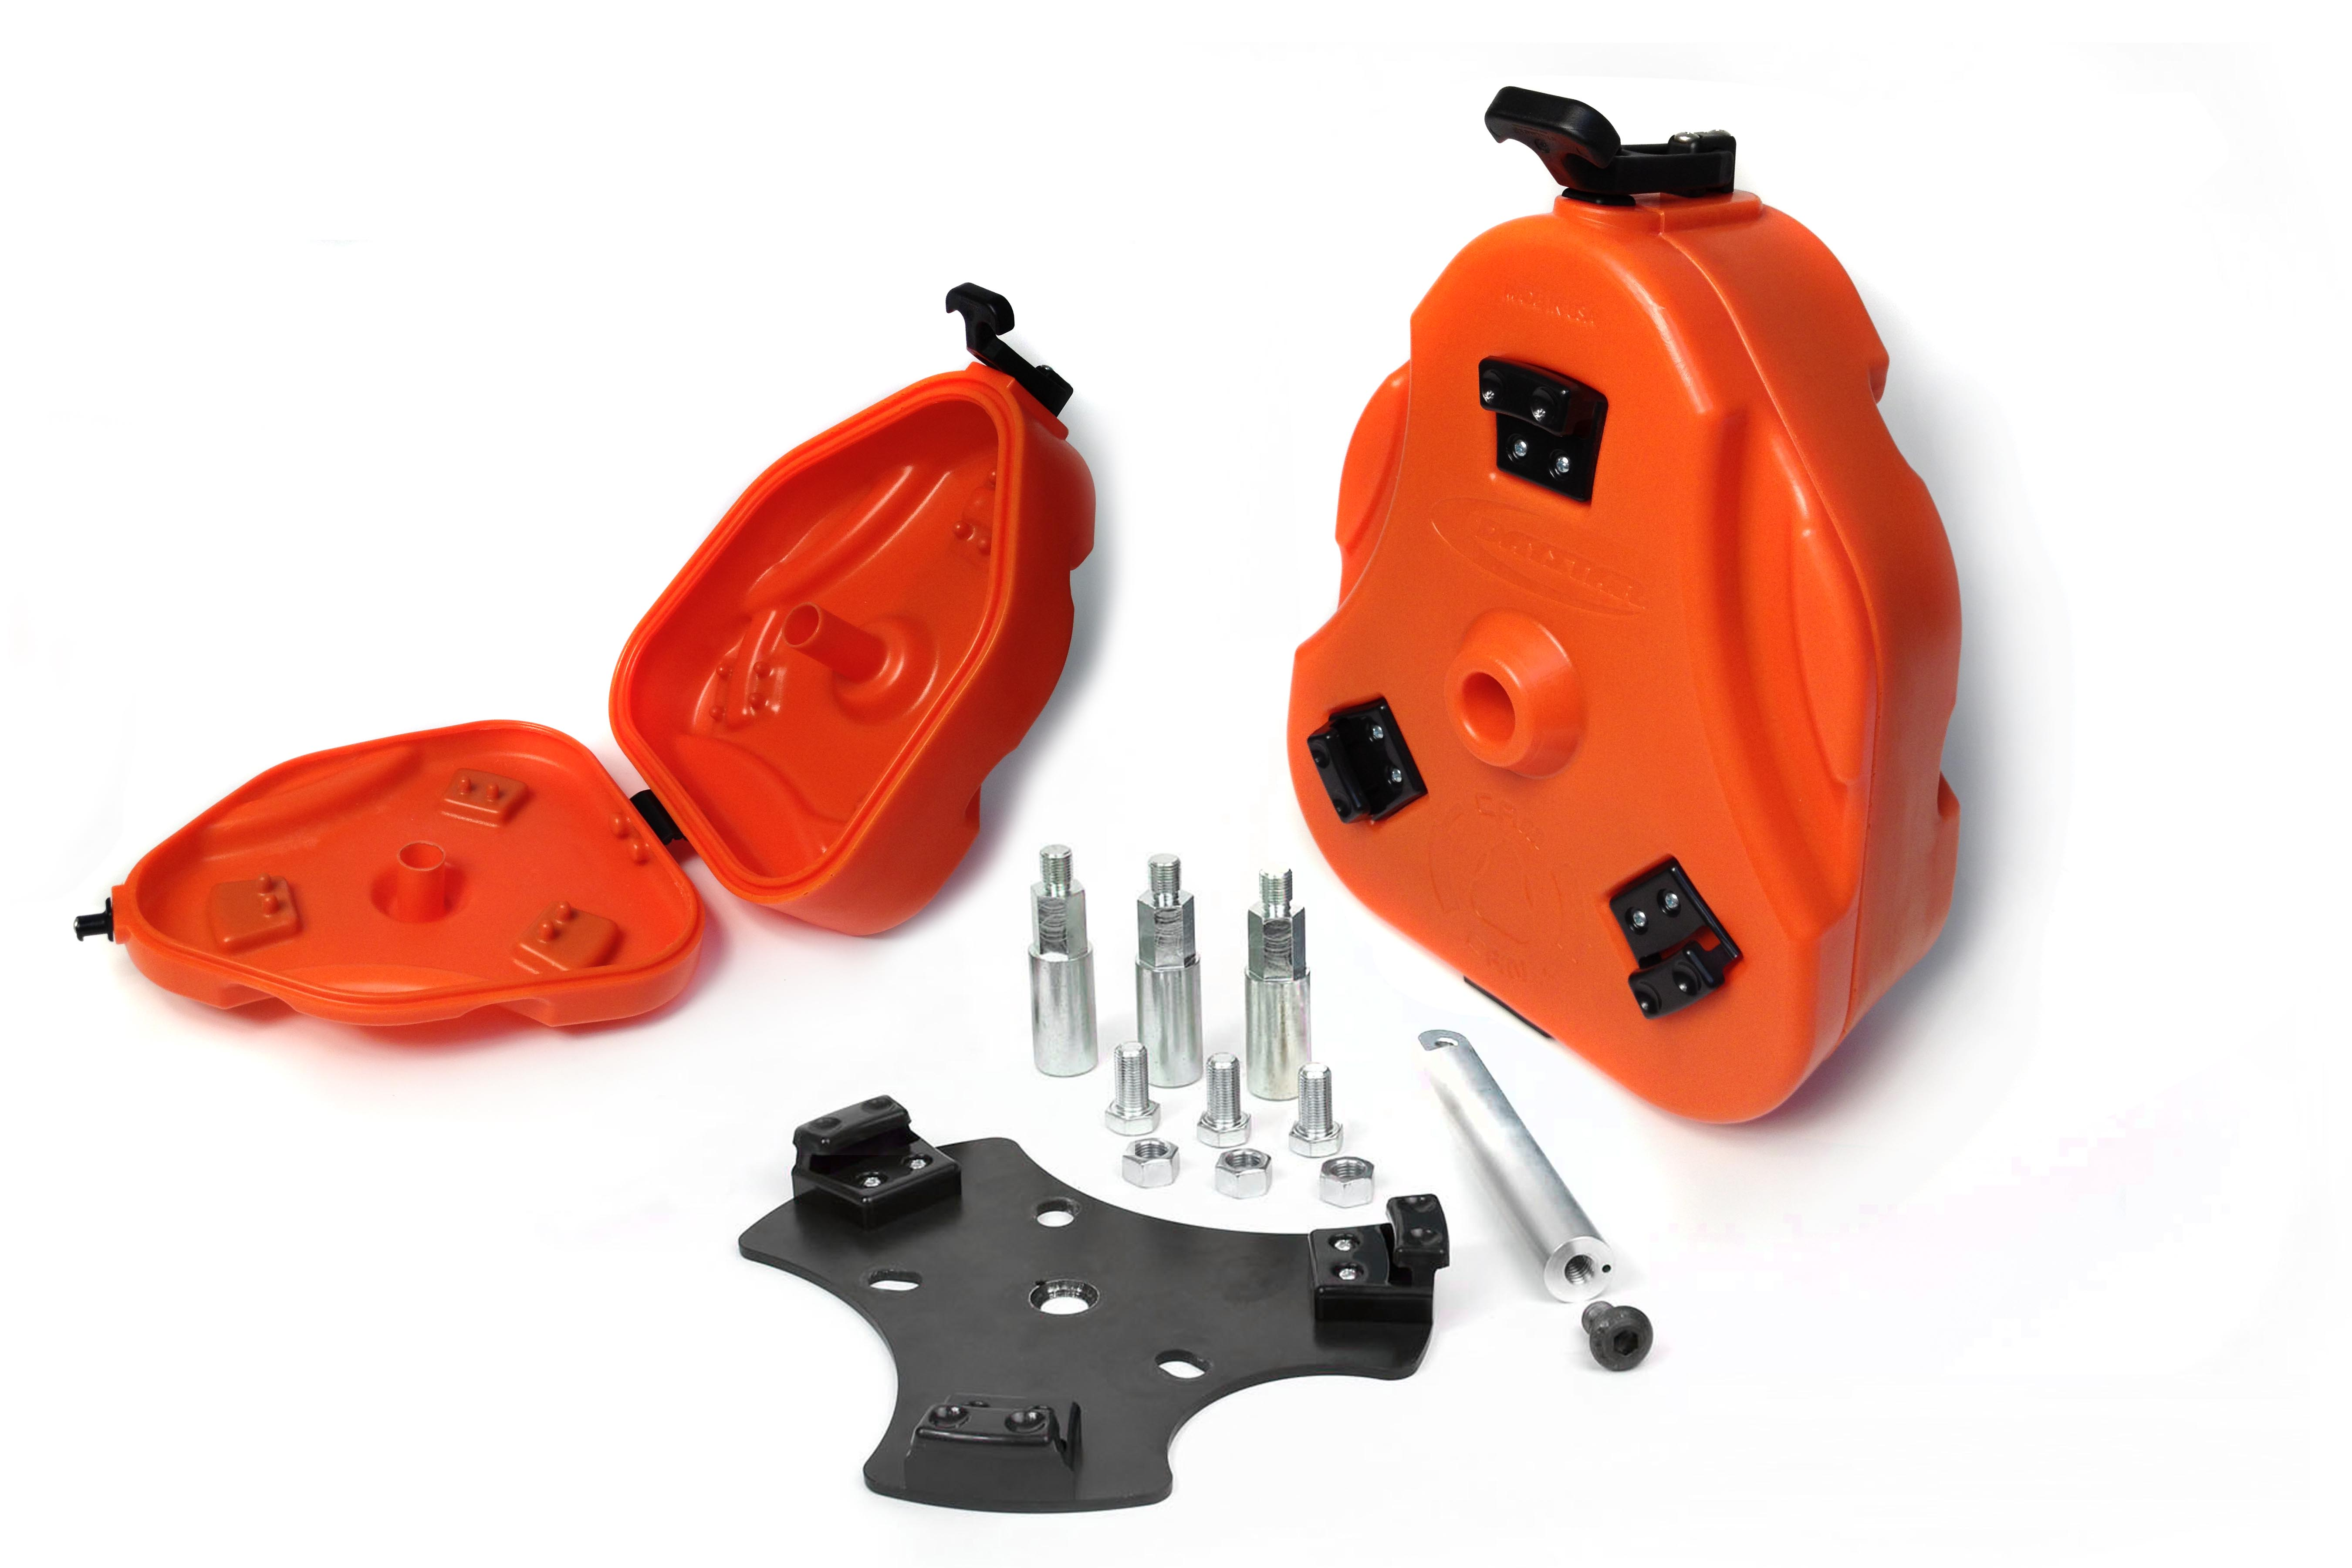 Daystar 2.5 gallon Trail Box - Storage - Orange